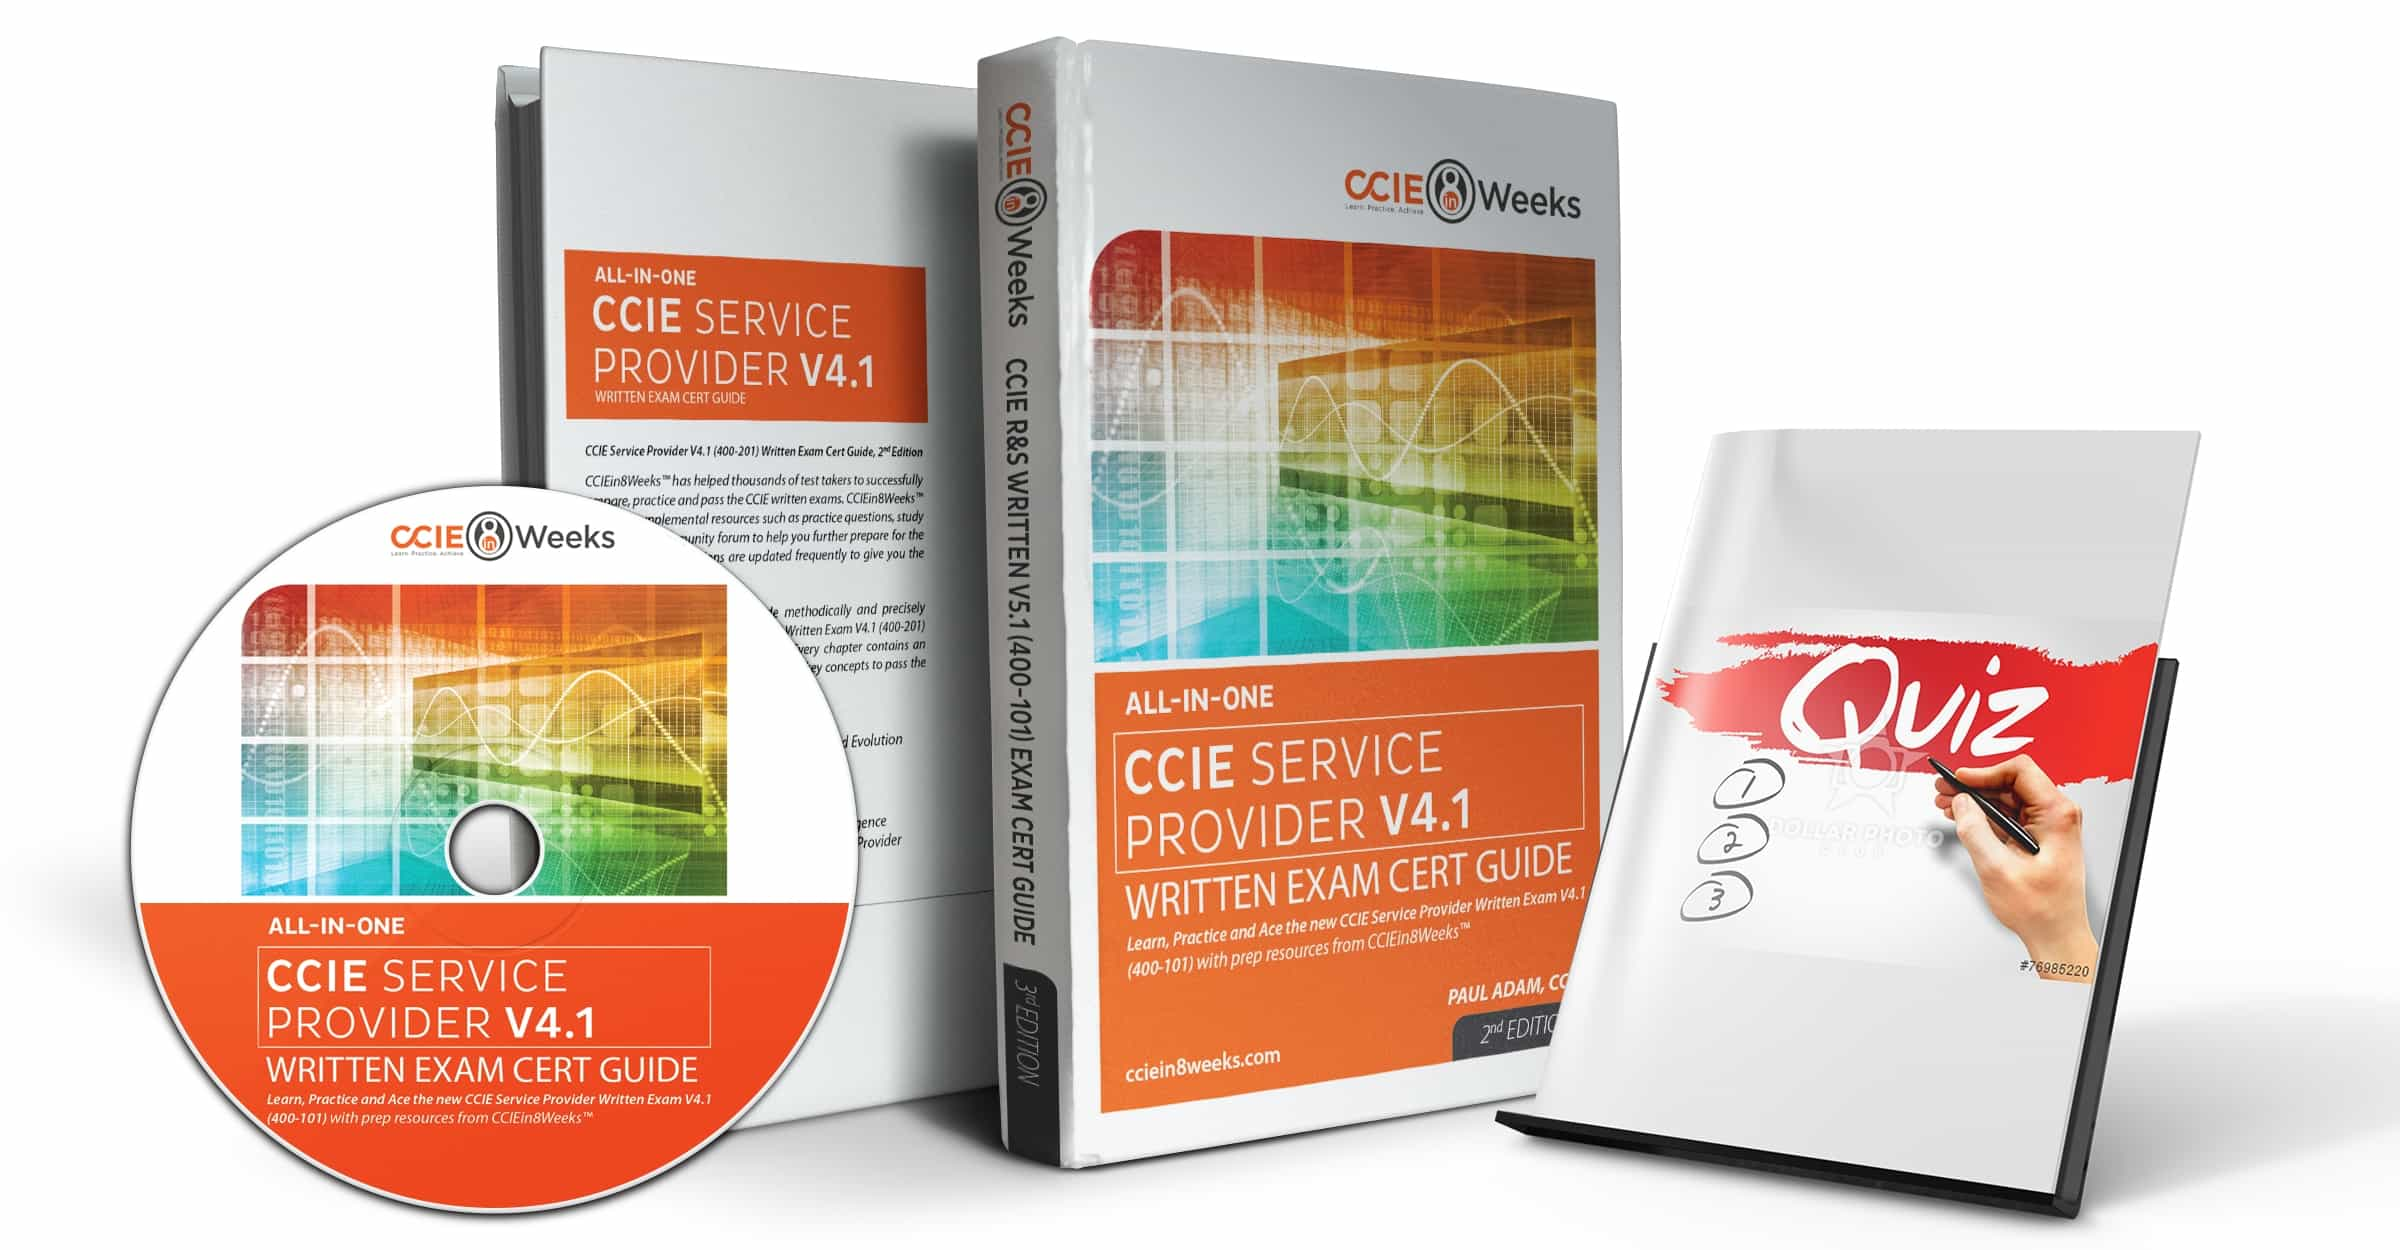 aio ccie sp 400-201 v4.1 cciein8weeks.com